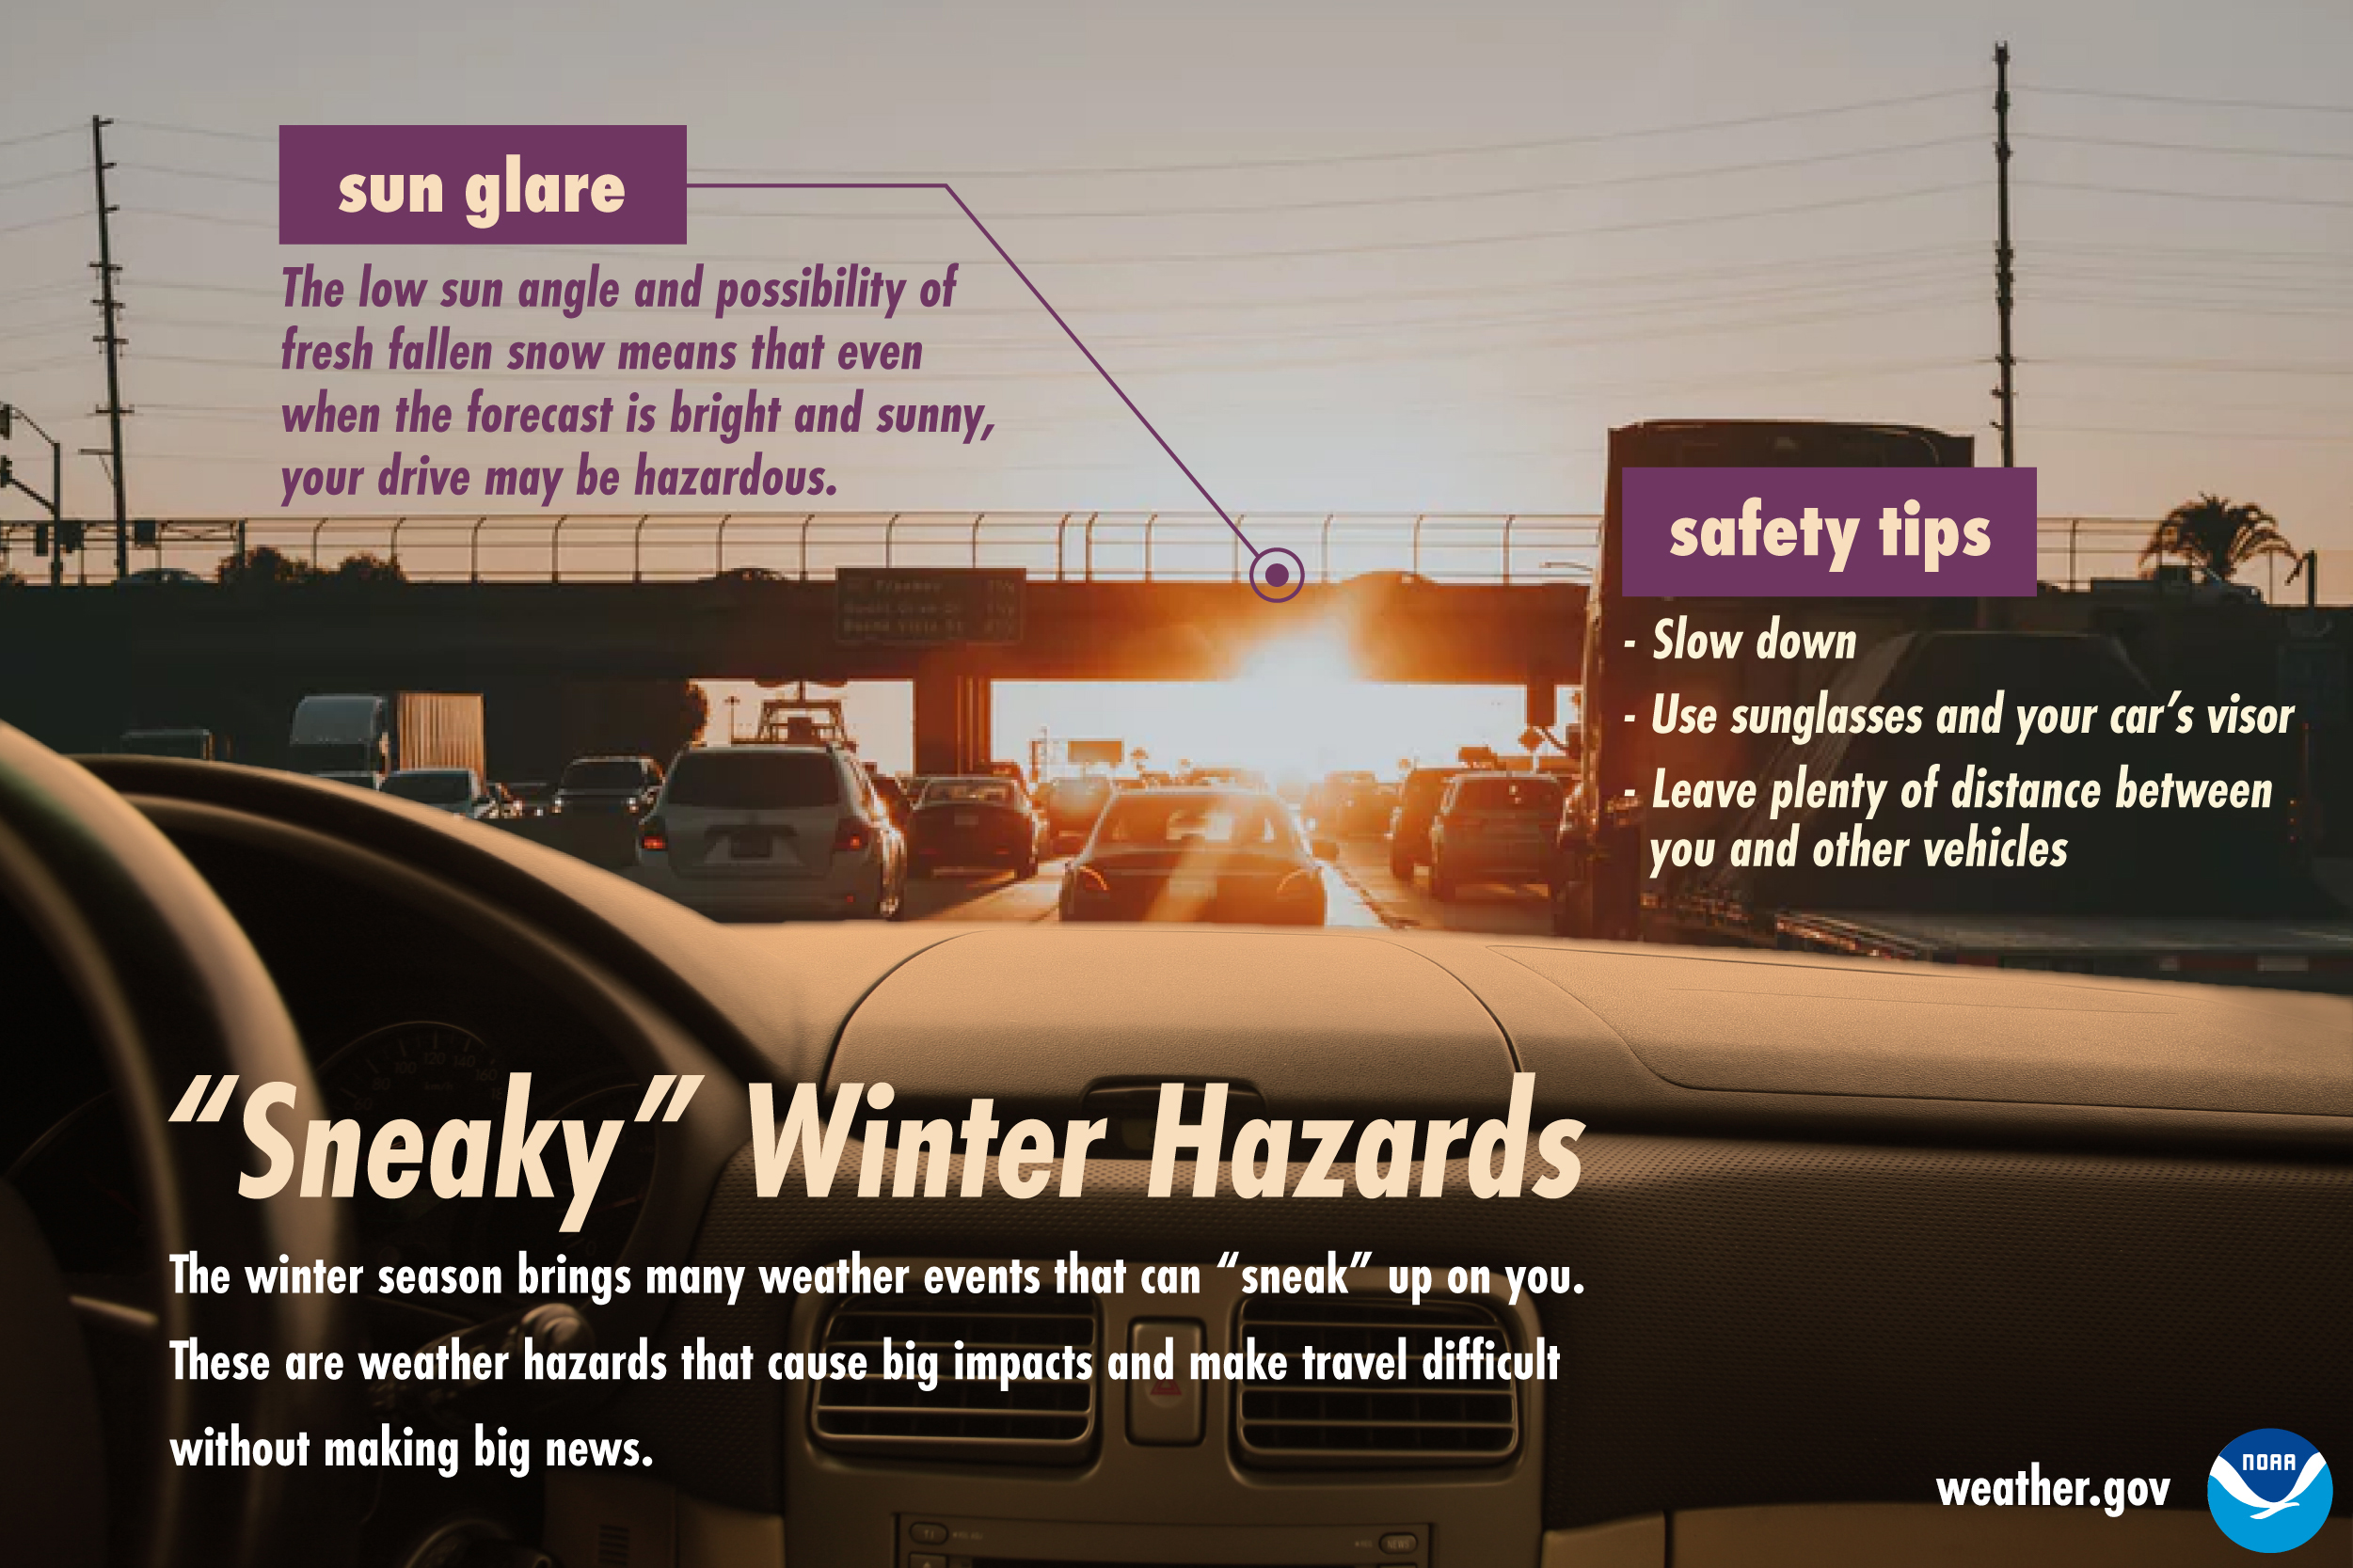 Sneaky Winter Hazards: Sun glare.